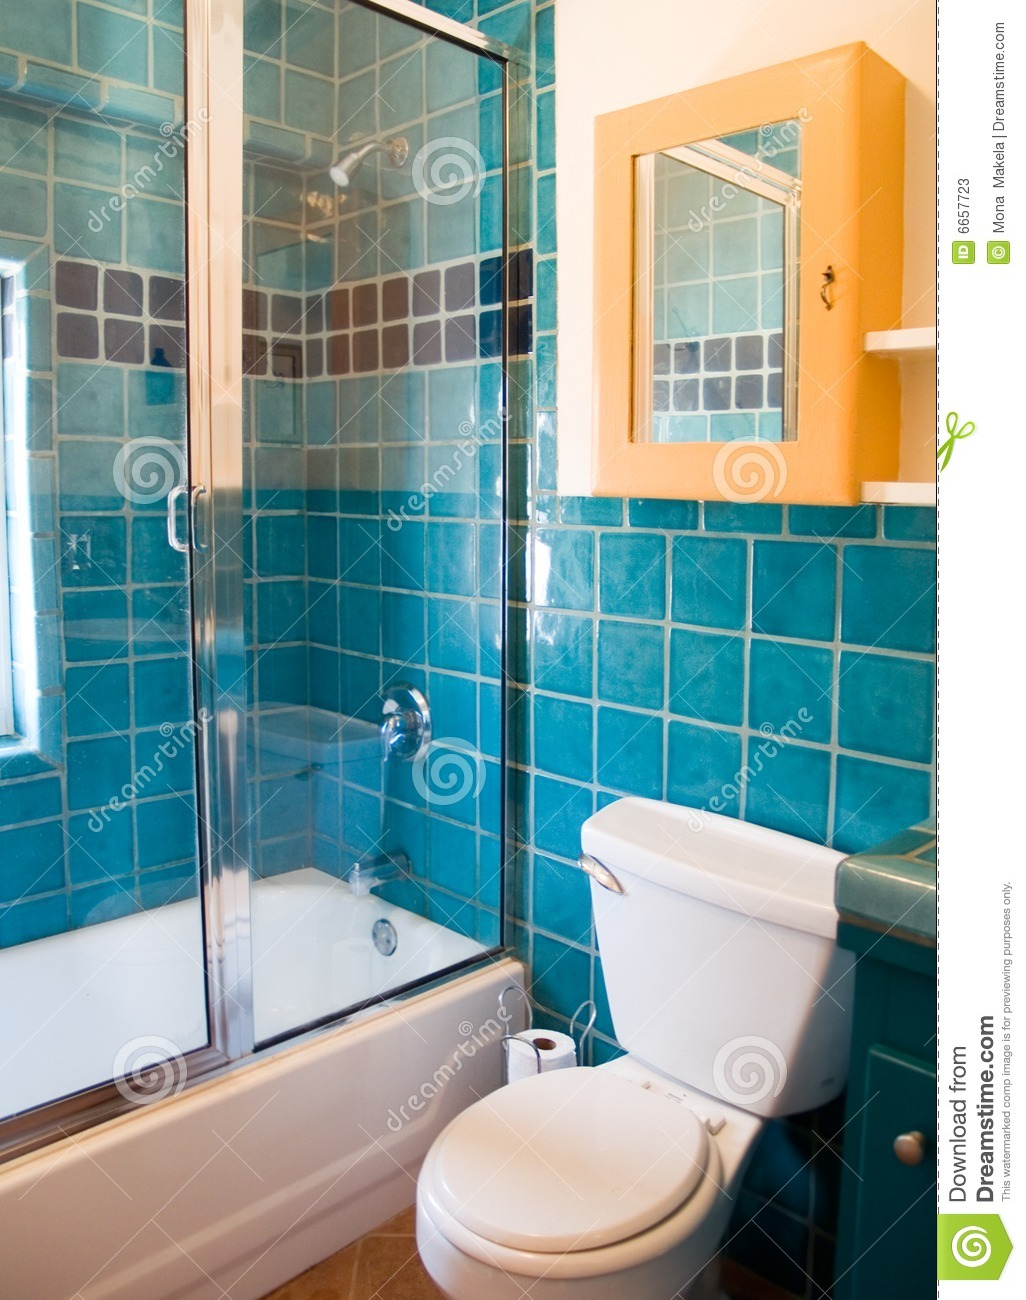 Turquoise Tile Work In A Bathroom Stock Image  Image of